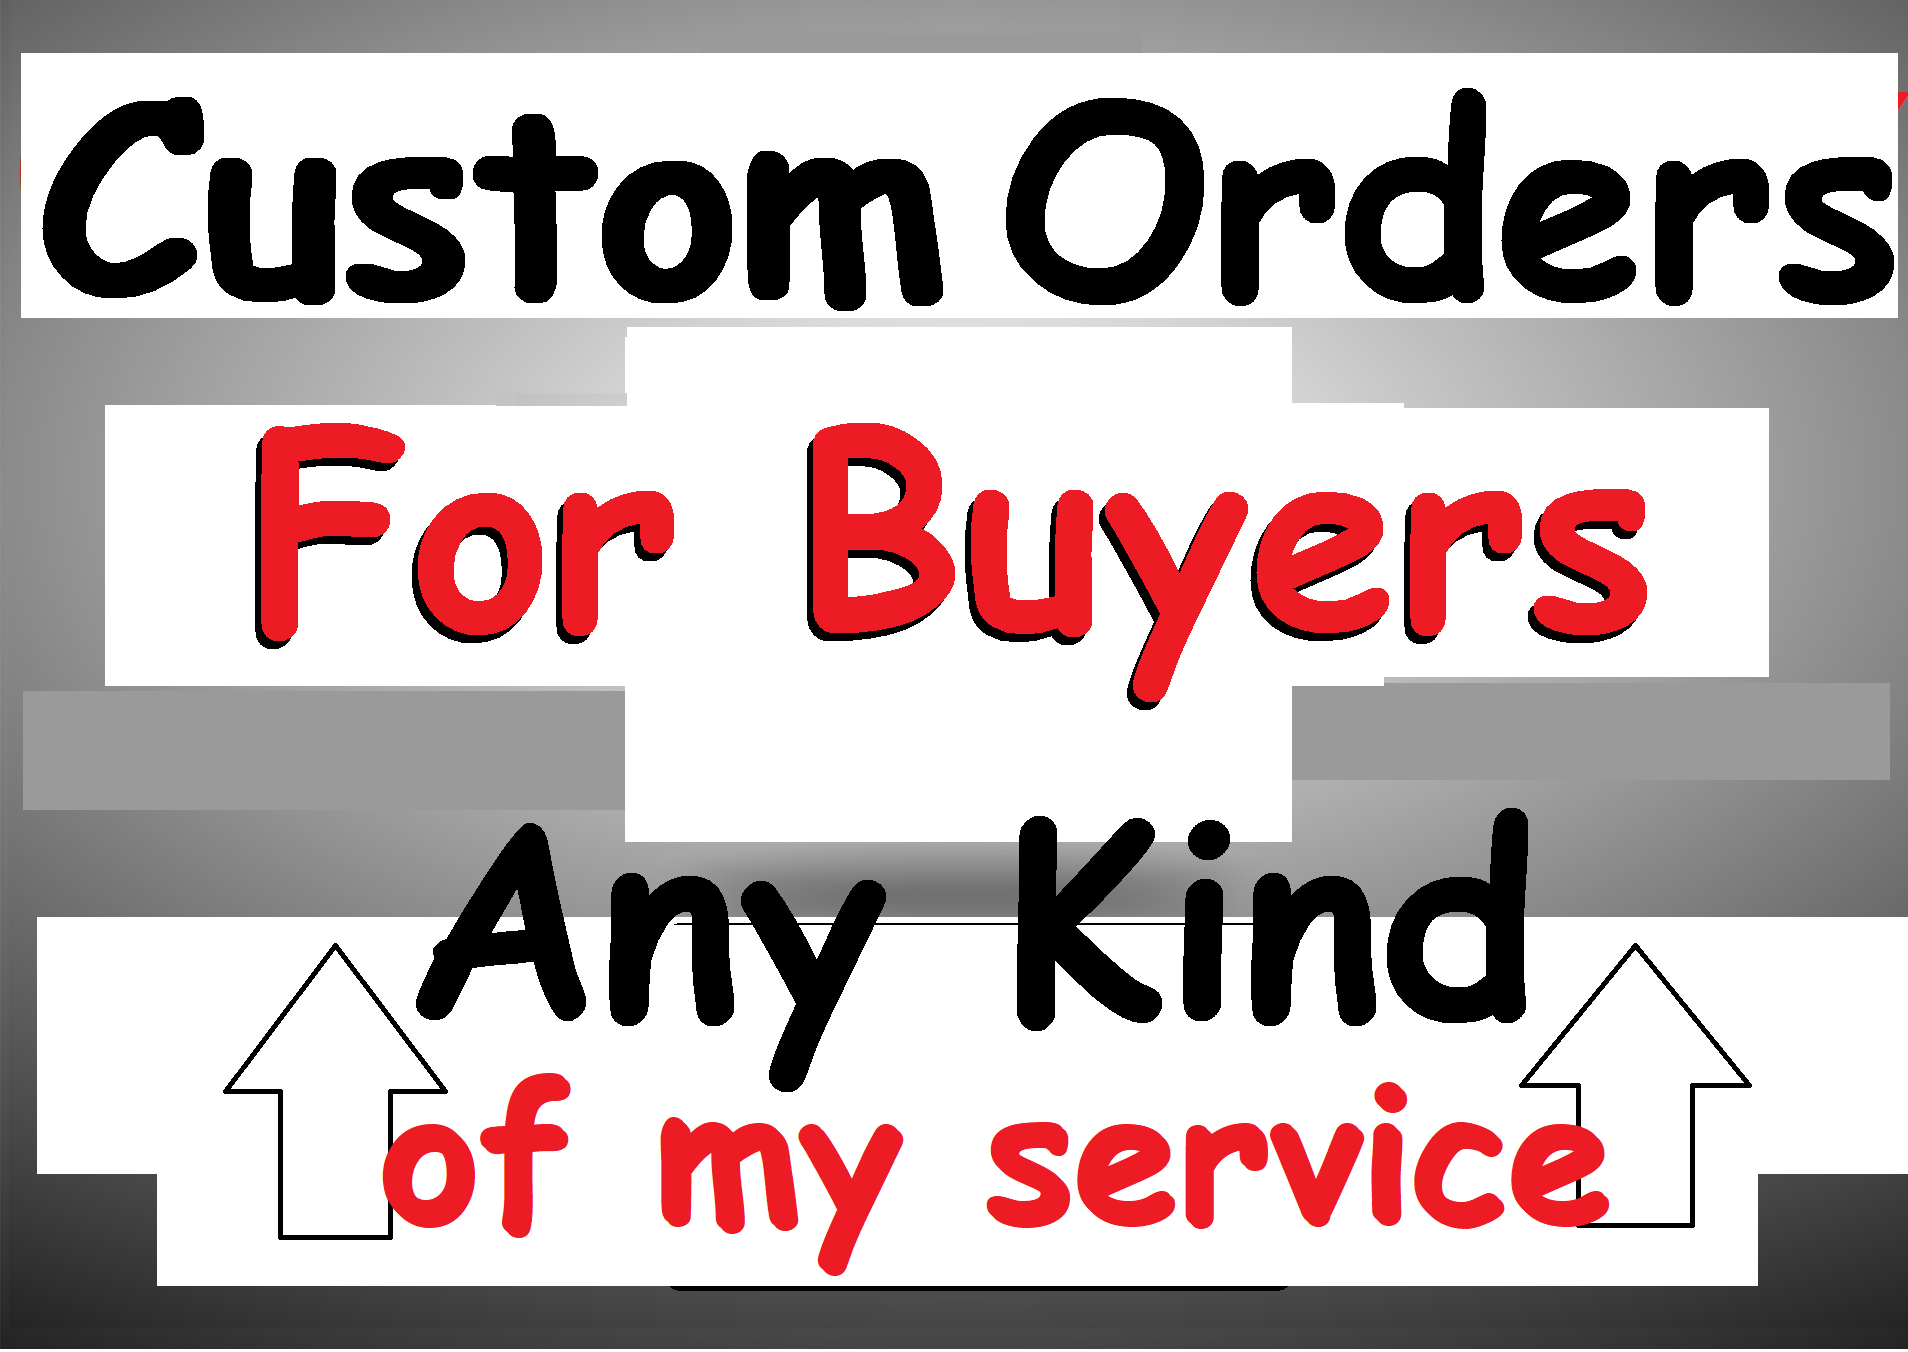 custom order for my buyer services within delivery time